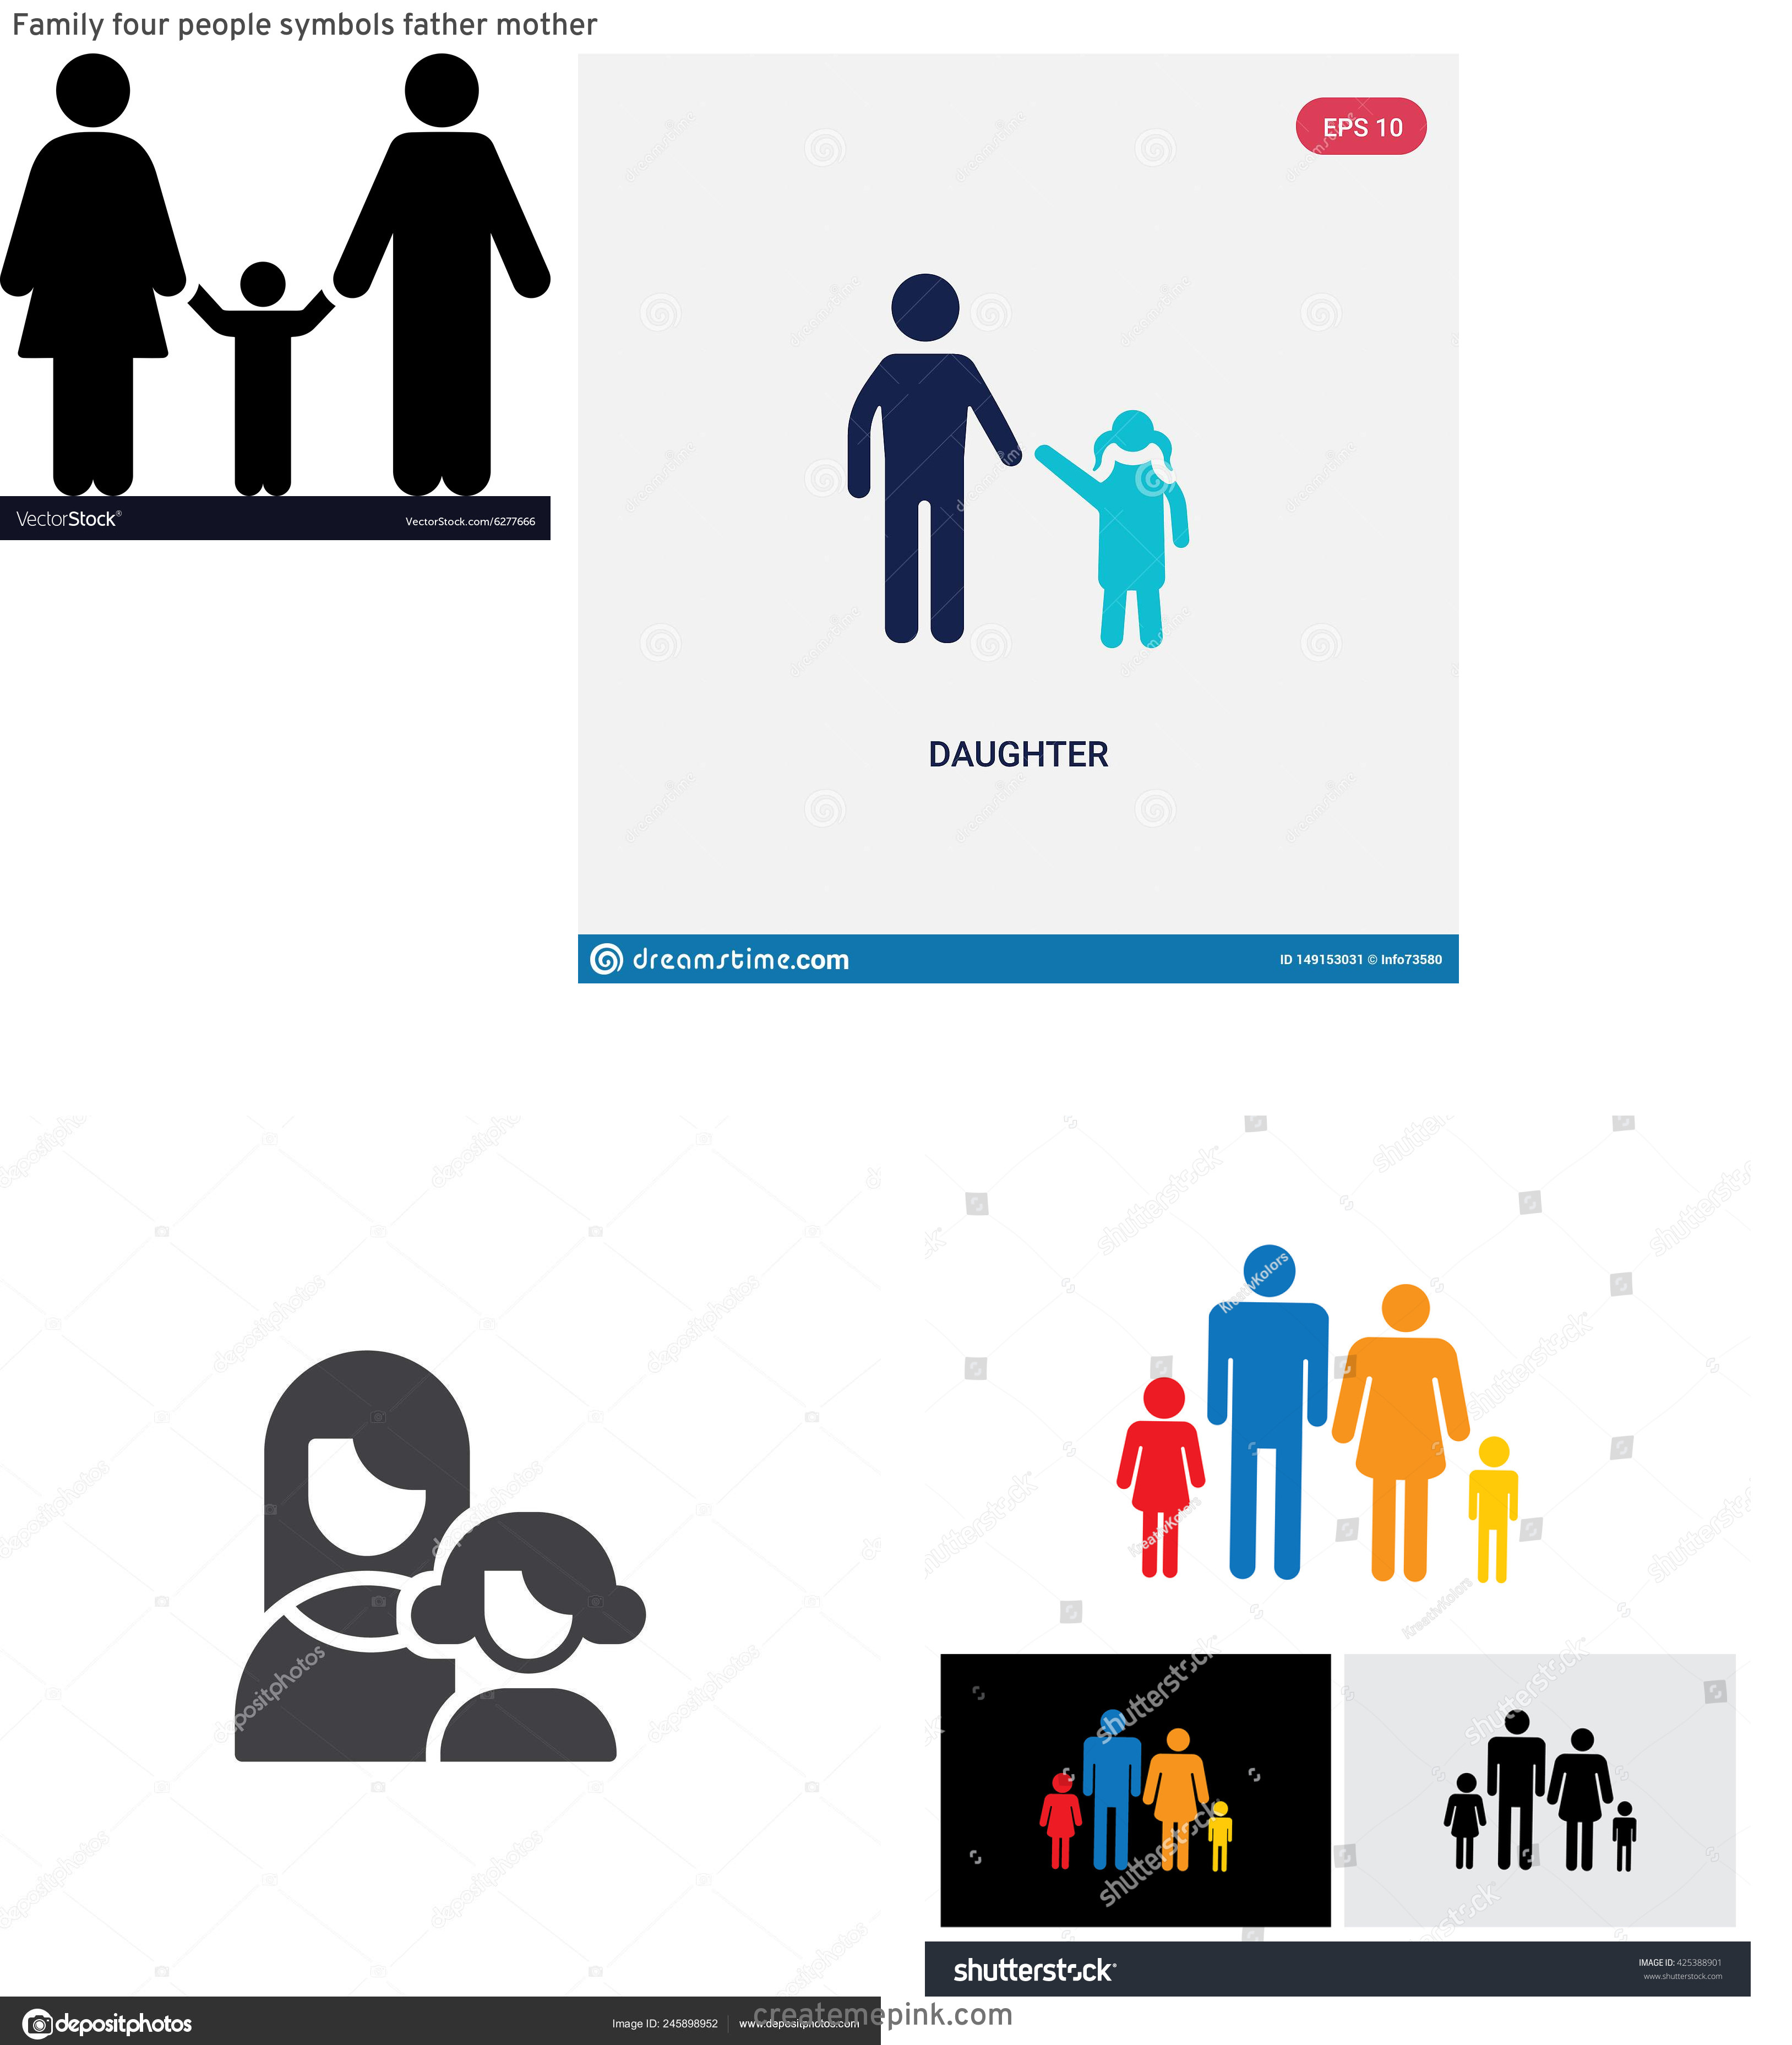 Daughter Vector Icons: Family Four People Symbols Father Mother